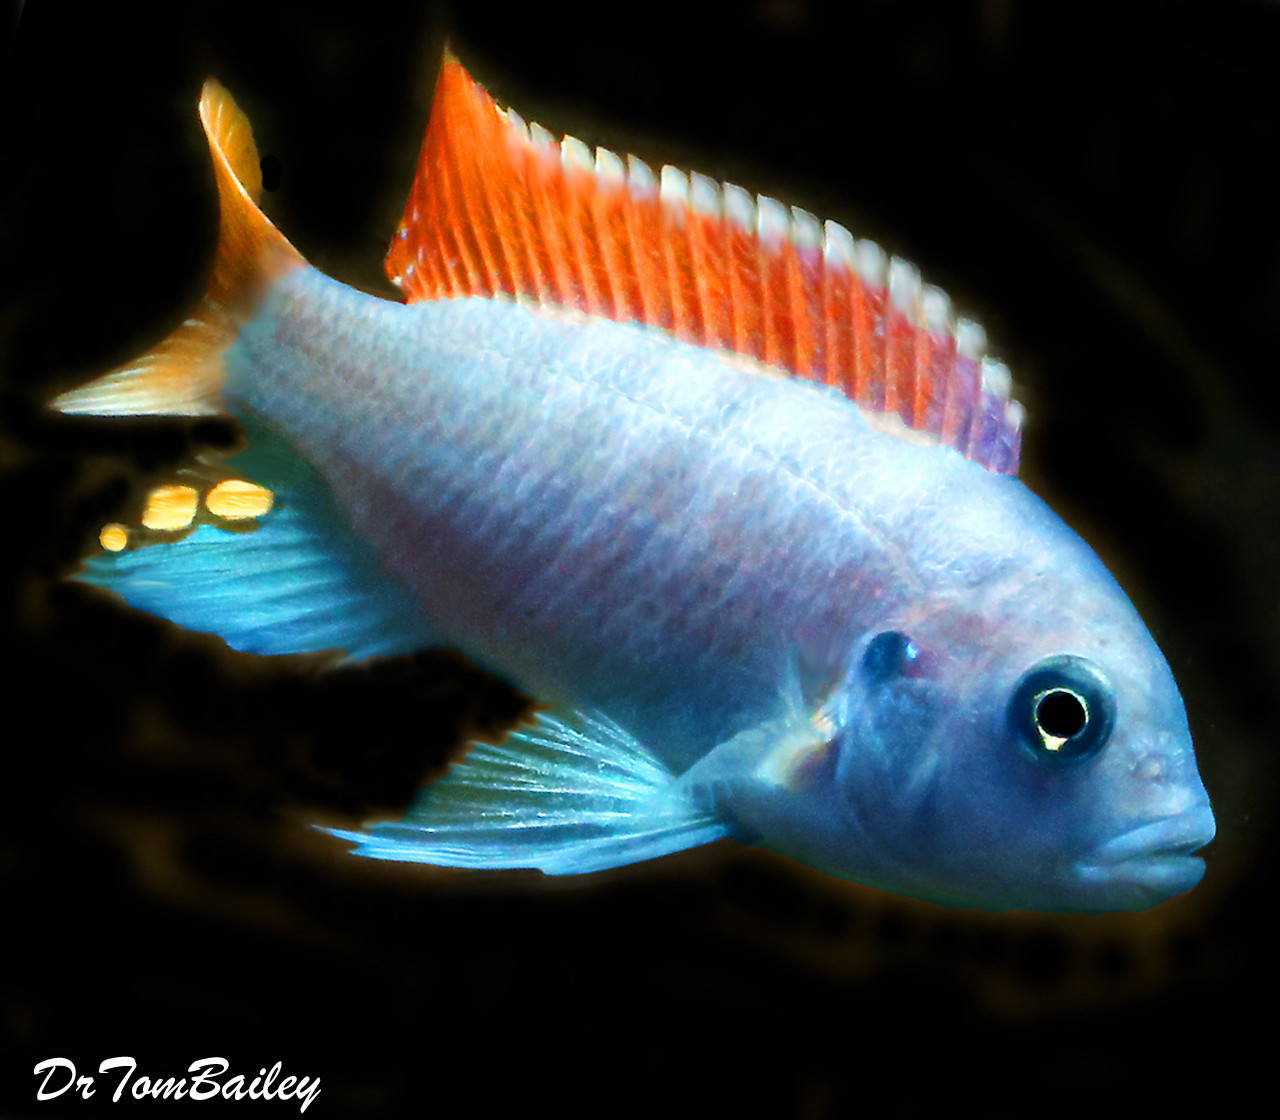 Premium Red Top Zebra Mbuna from Lake Malawi in Africa